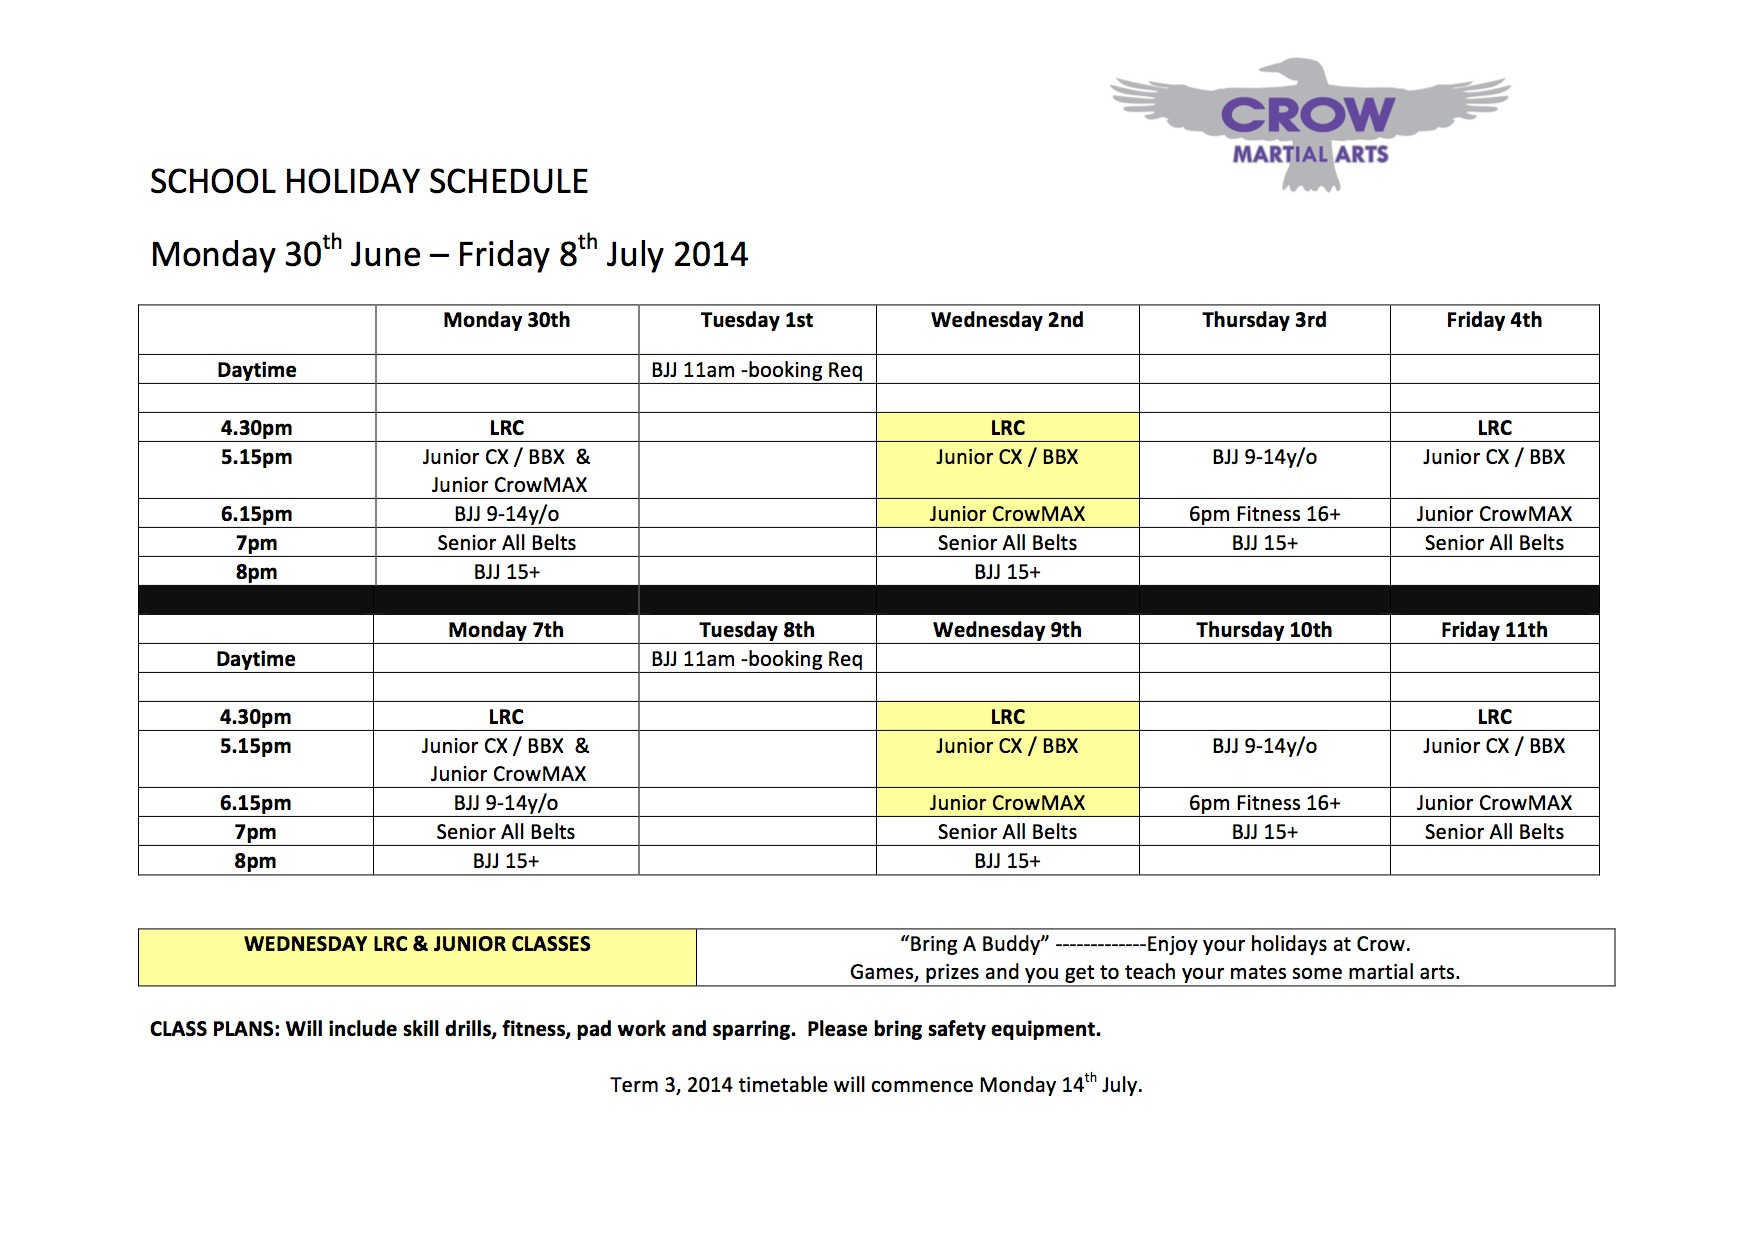 School holiday timetable